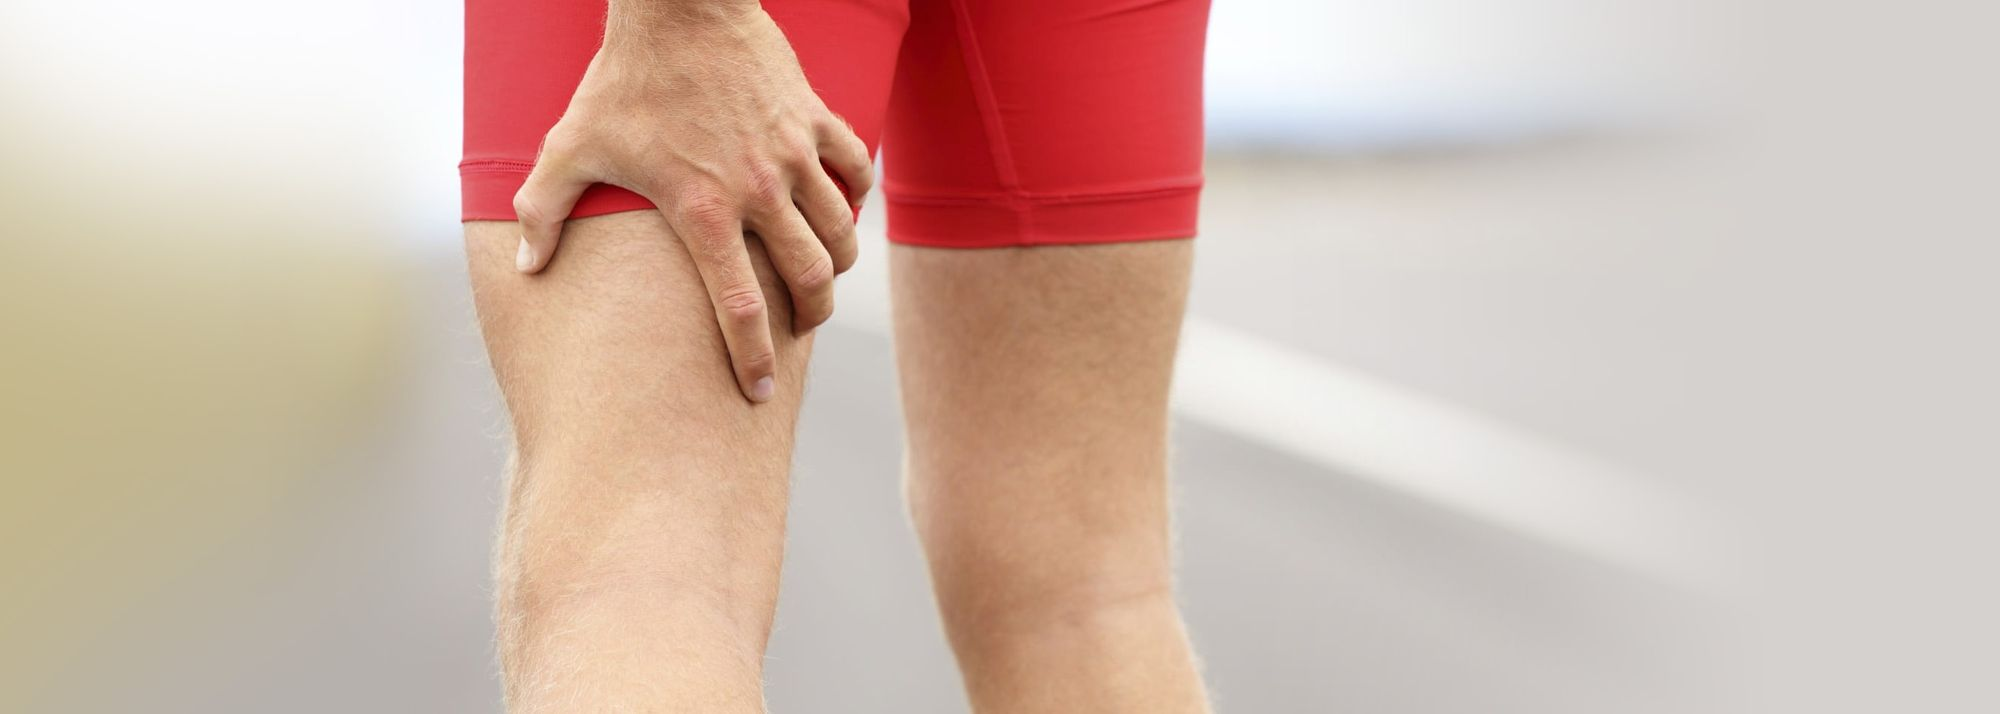 Muscle injuries are very common but thankfully often easier to resolve than other types of injuries